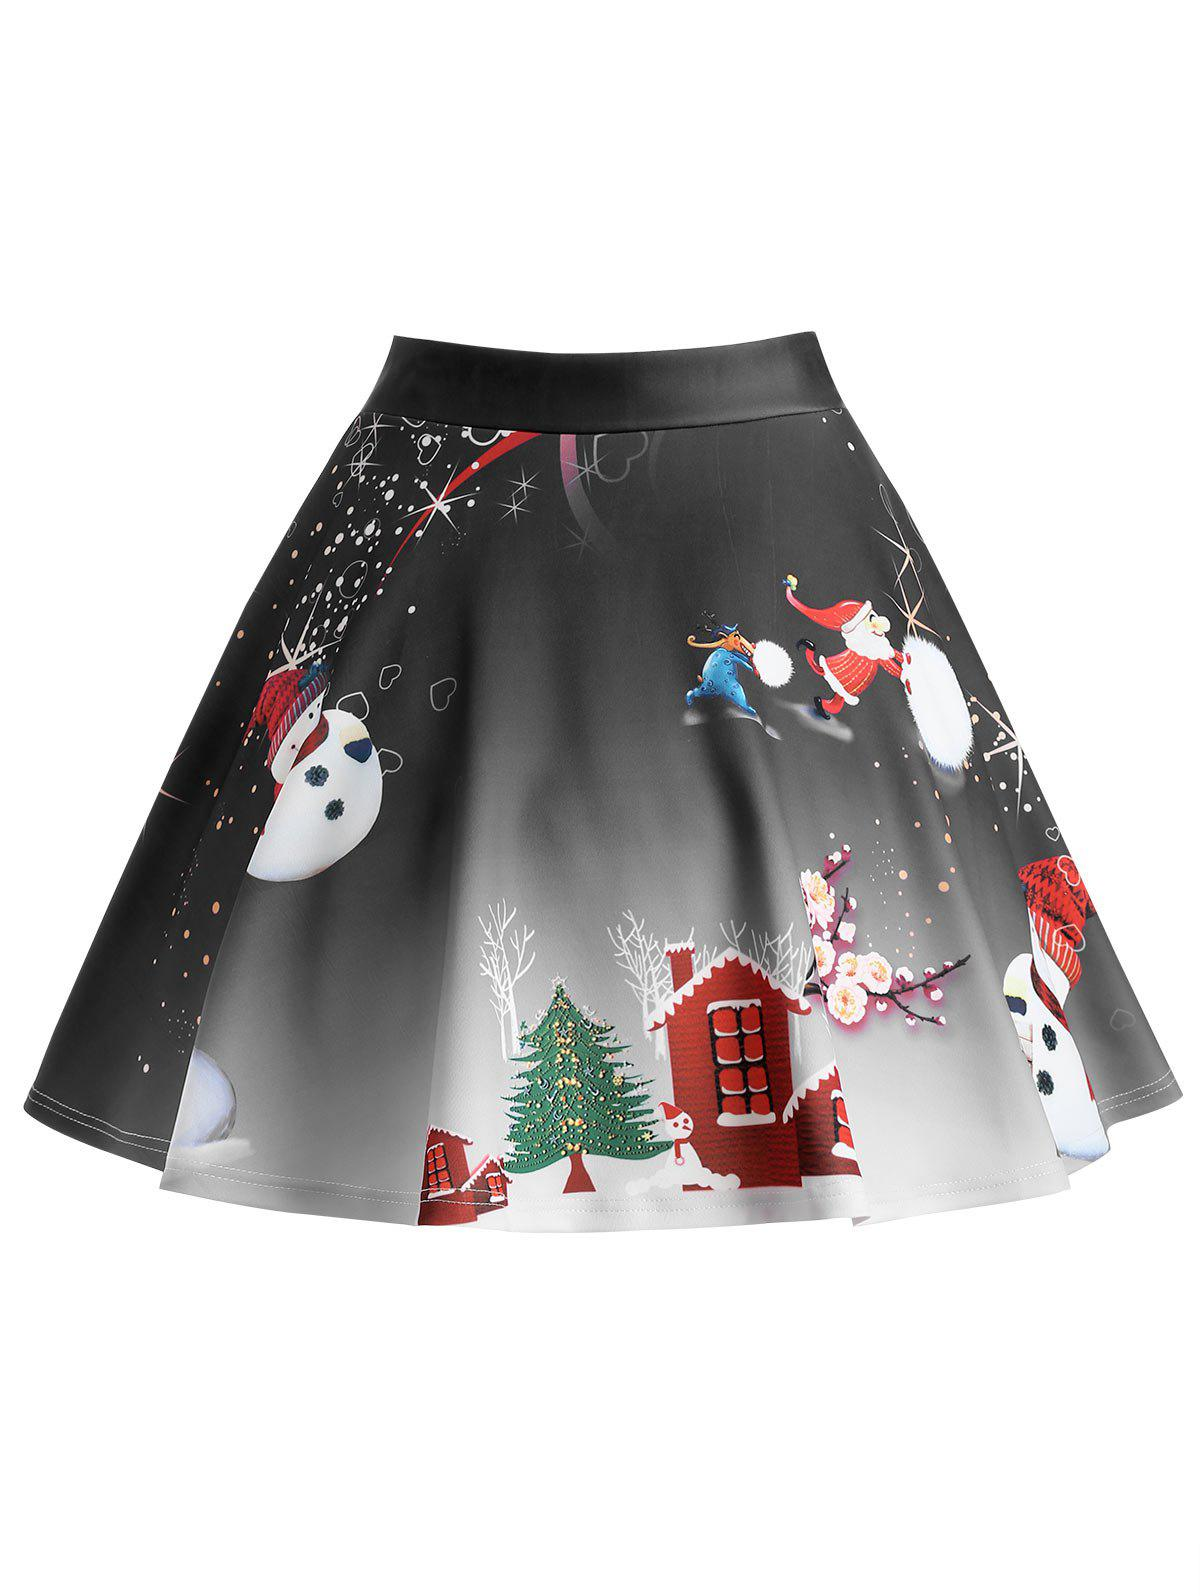 Christmas Tree Snowman Wintersweet Print Ombre SkirtWOMEN<br><br>Size: 5XL; Color: BLACK; Material: Polyester,Spandex; Length: Mini; Silhouette: A-Line; Pattern Type: Print; Season: Winter; With Belt: No; Weight: 0.3300kg; Package Contents: 1 x Skirt;